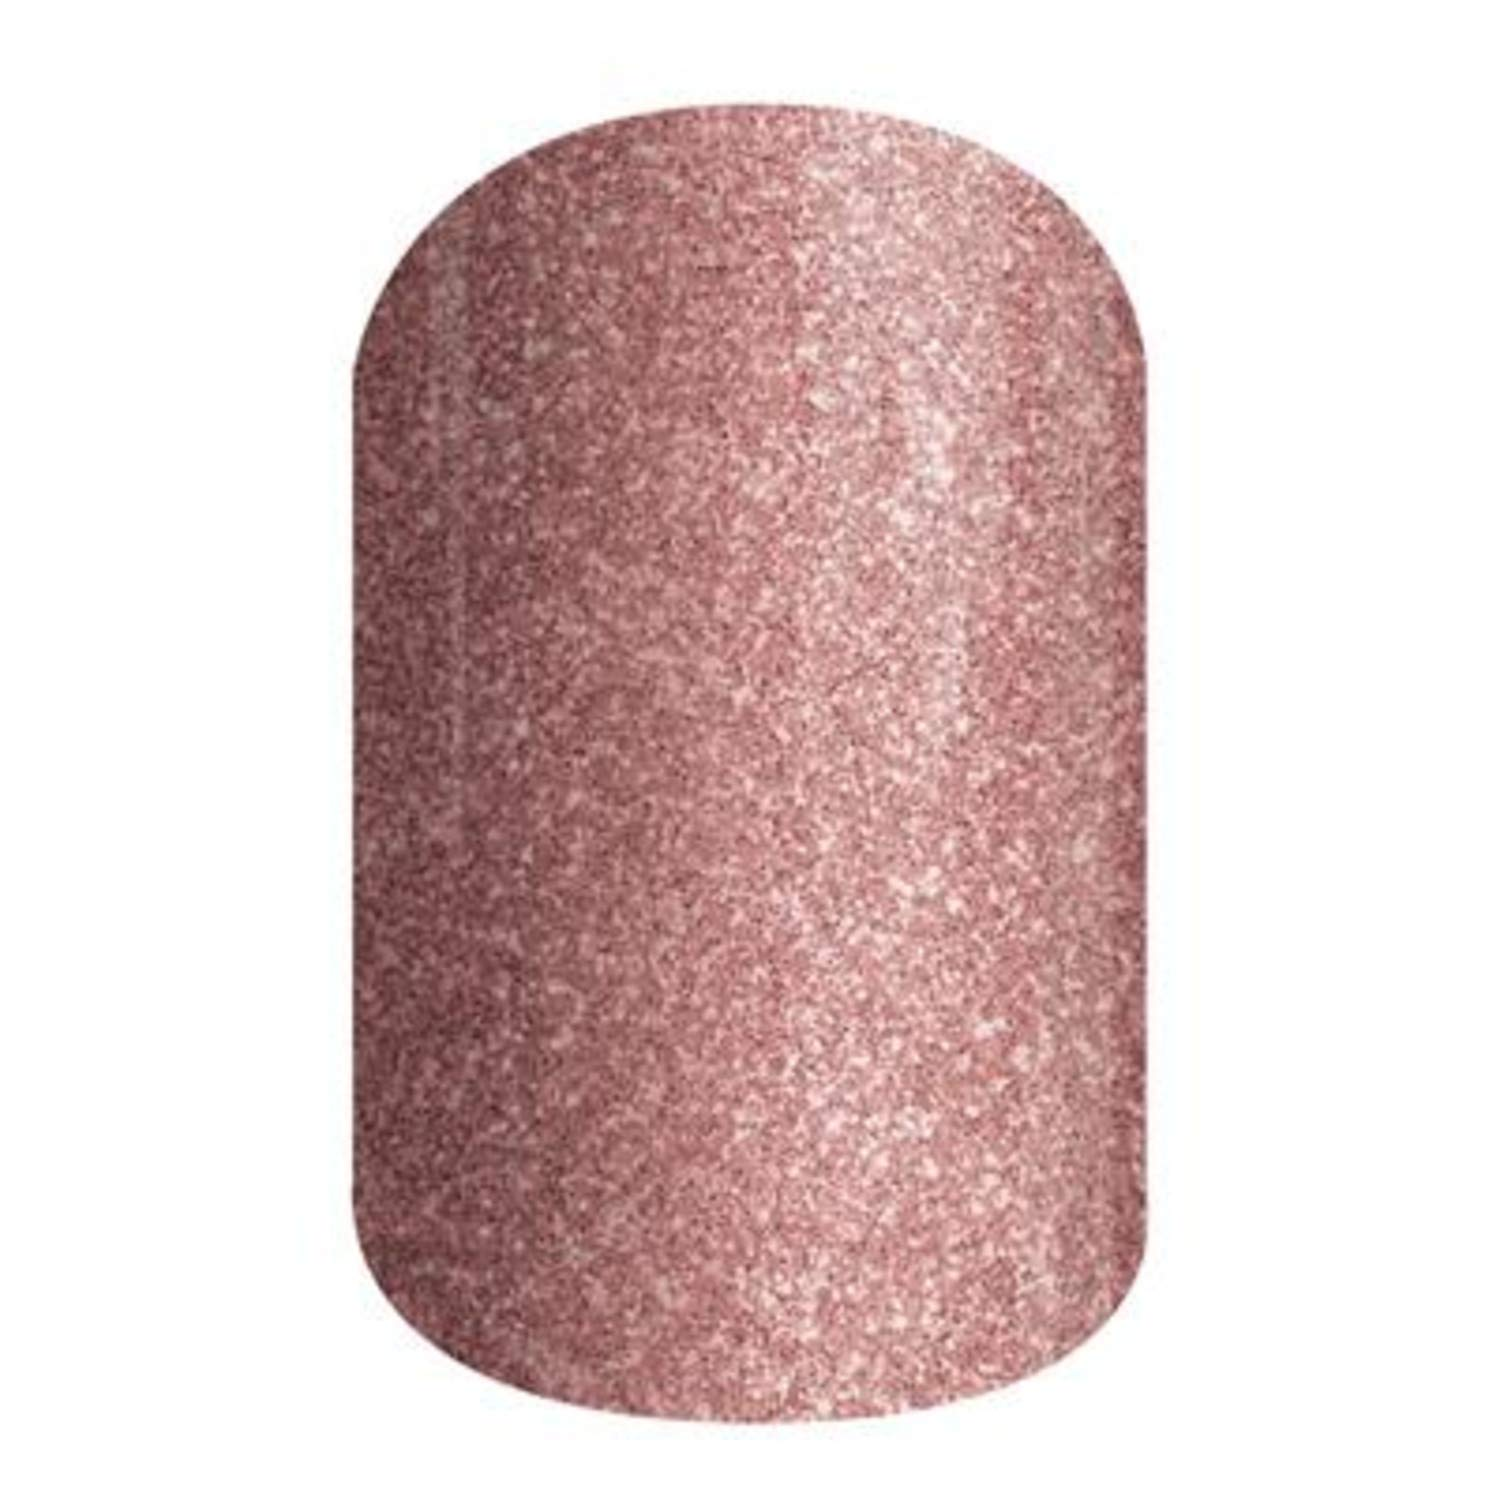 Rose Gold Sparkle - Jamberry Nail Wraps - A611 - Full Sheet by Jamberry